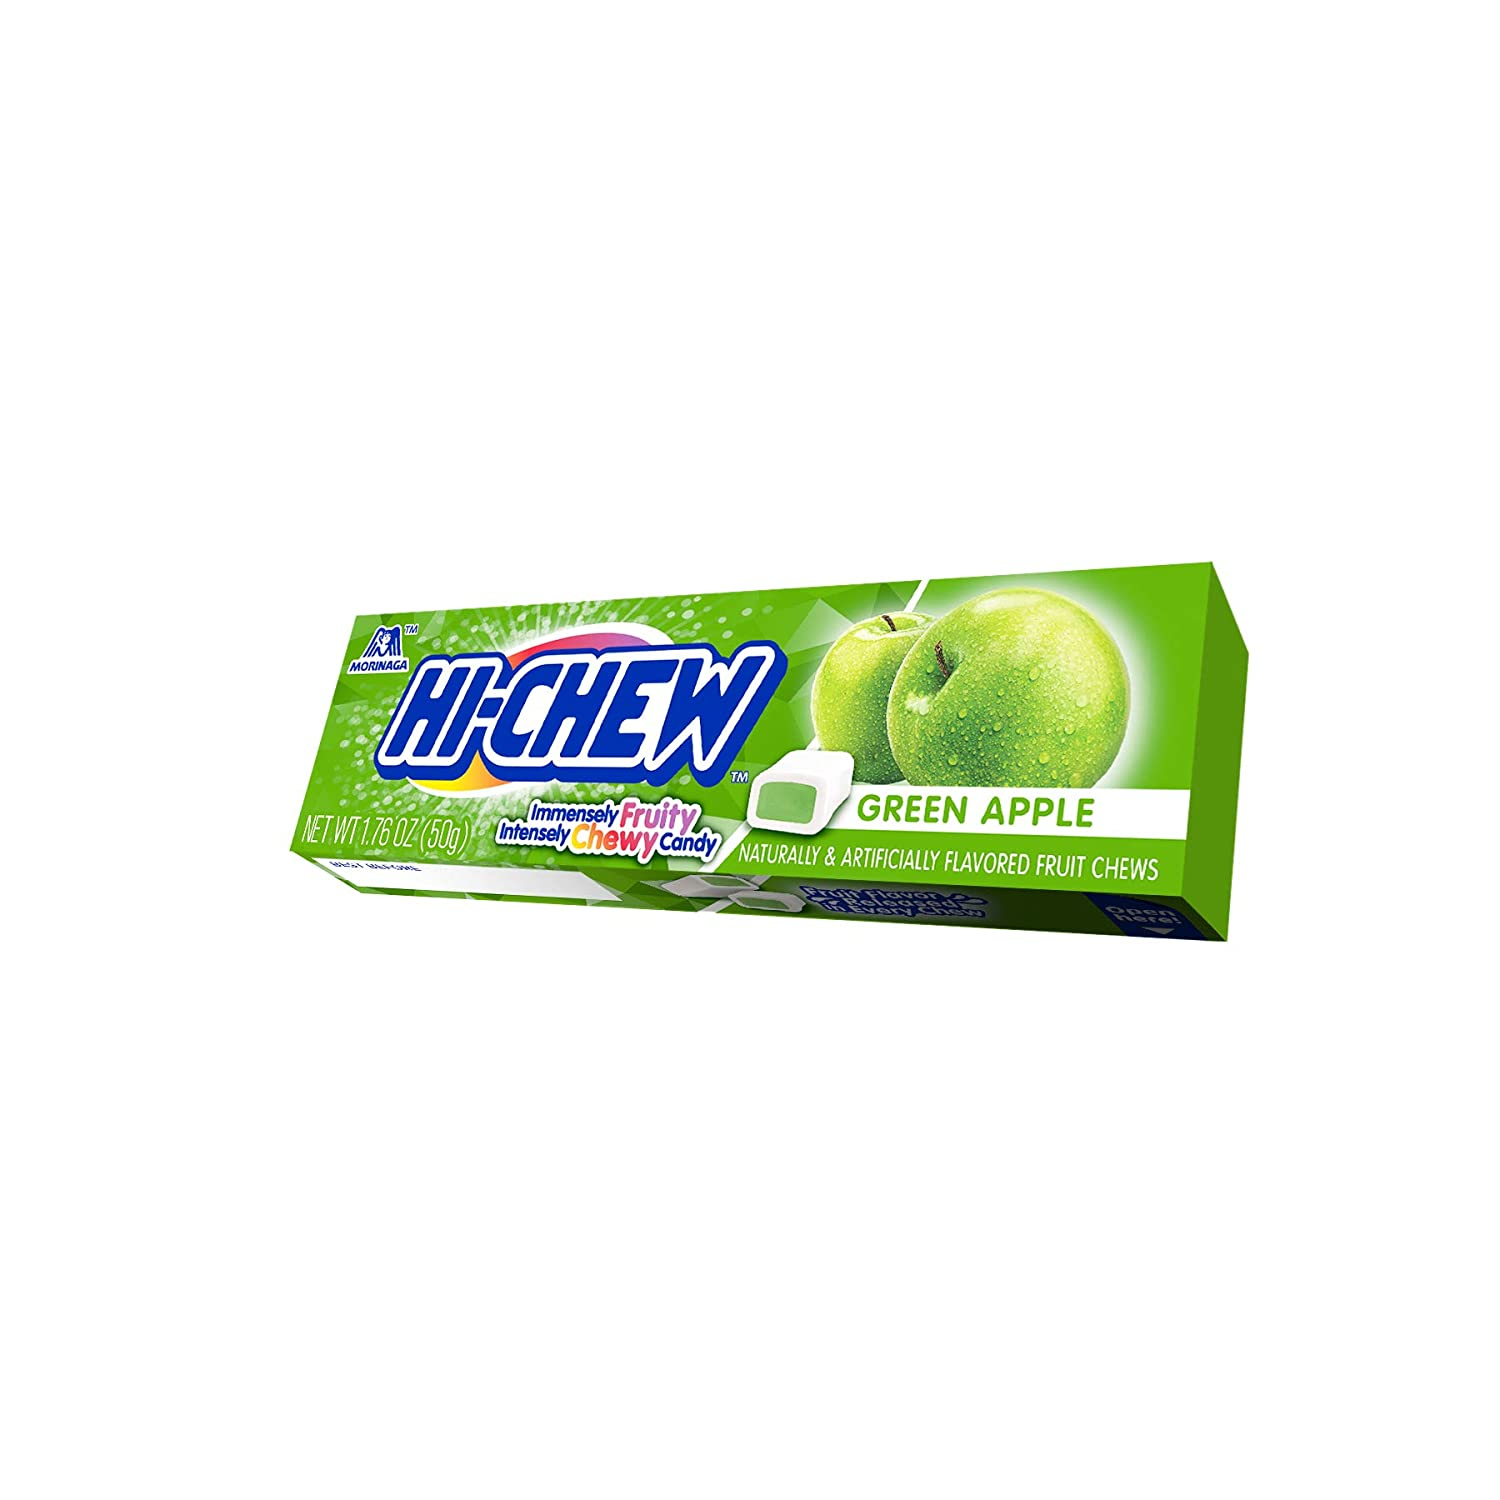 Hi-Chew Stick, Green Apple, 1.76 Ounce (Pack of 15)